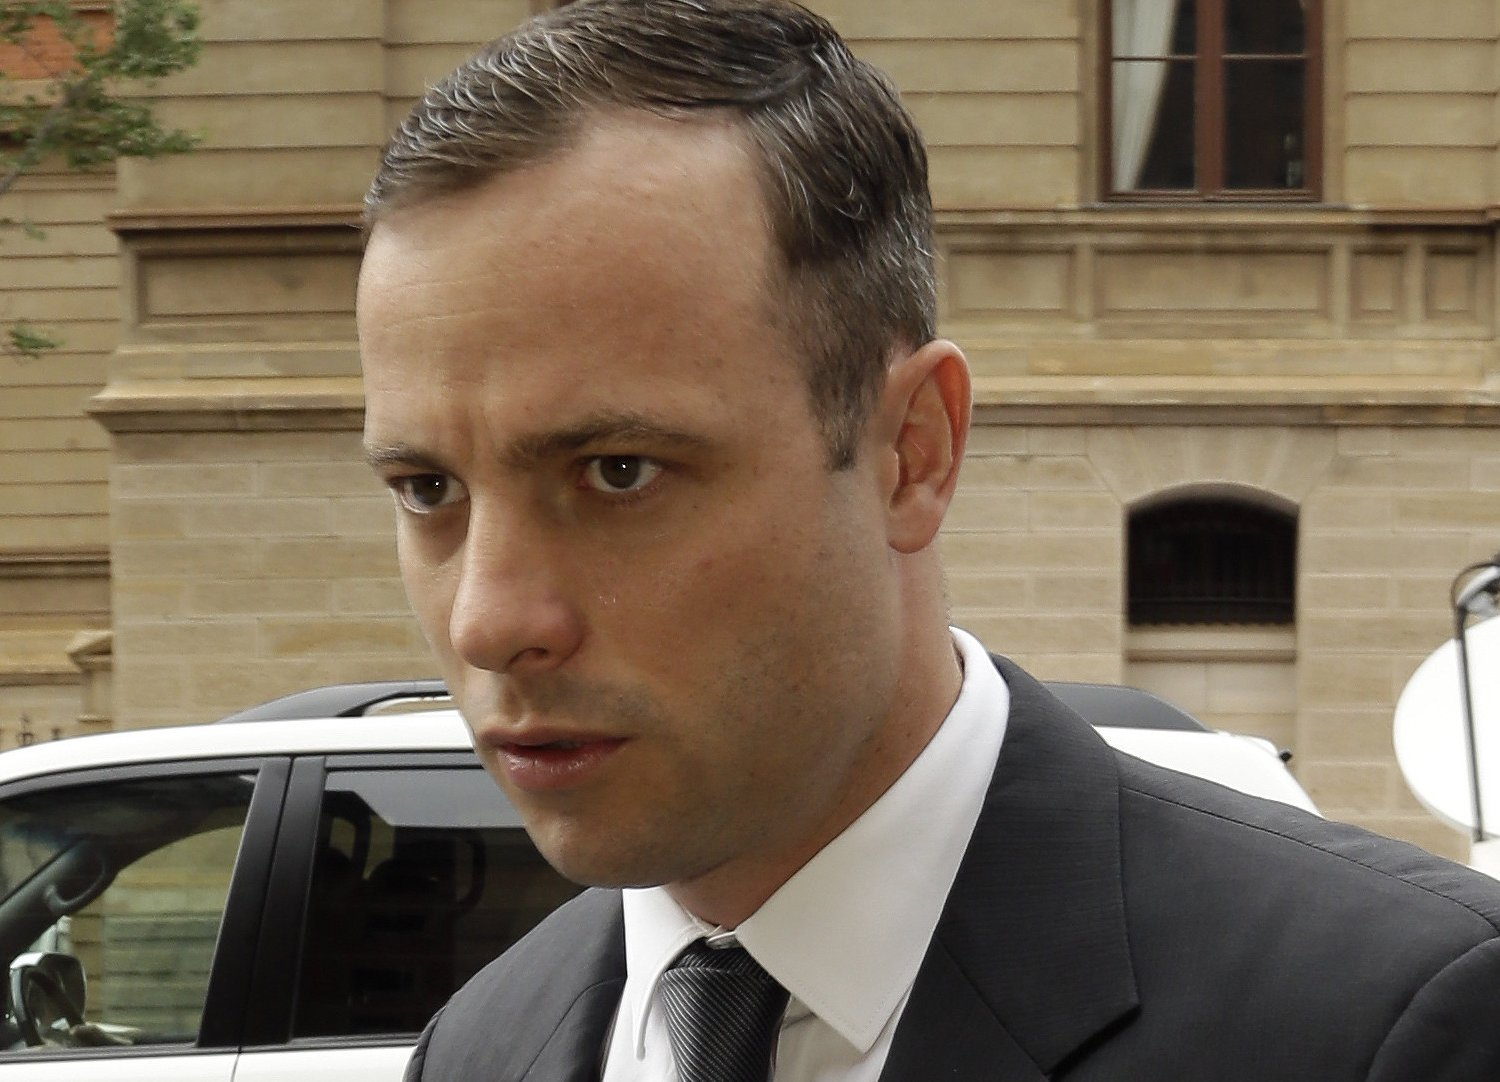 2229601 Oscar Pistorius Trial Live Stream And Latest News On Track Stars Sentencing on oscar pistorius trial live stream